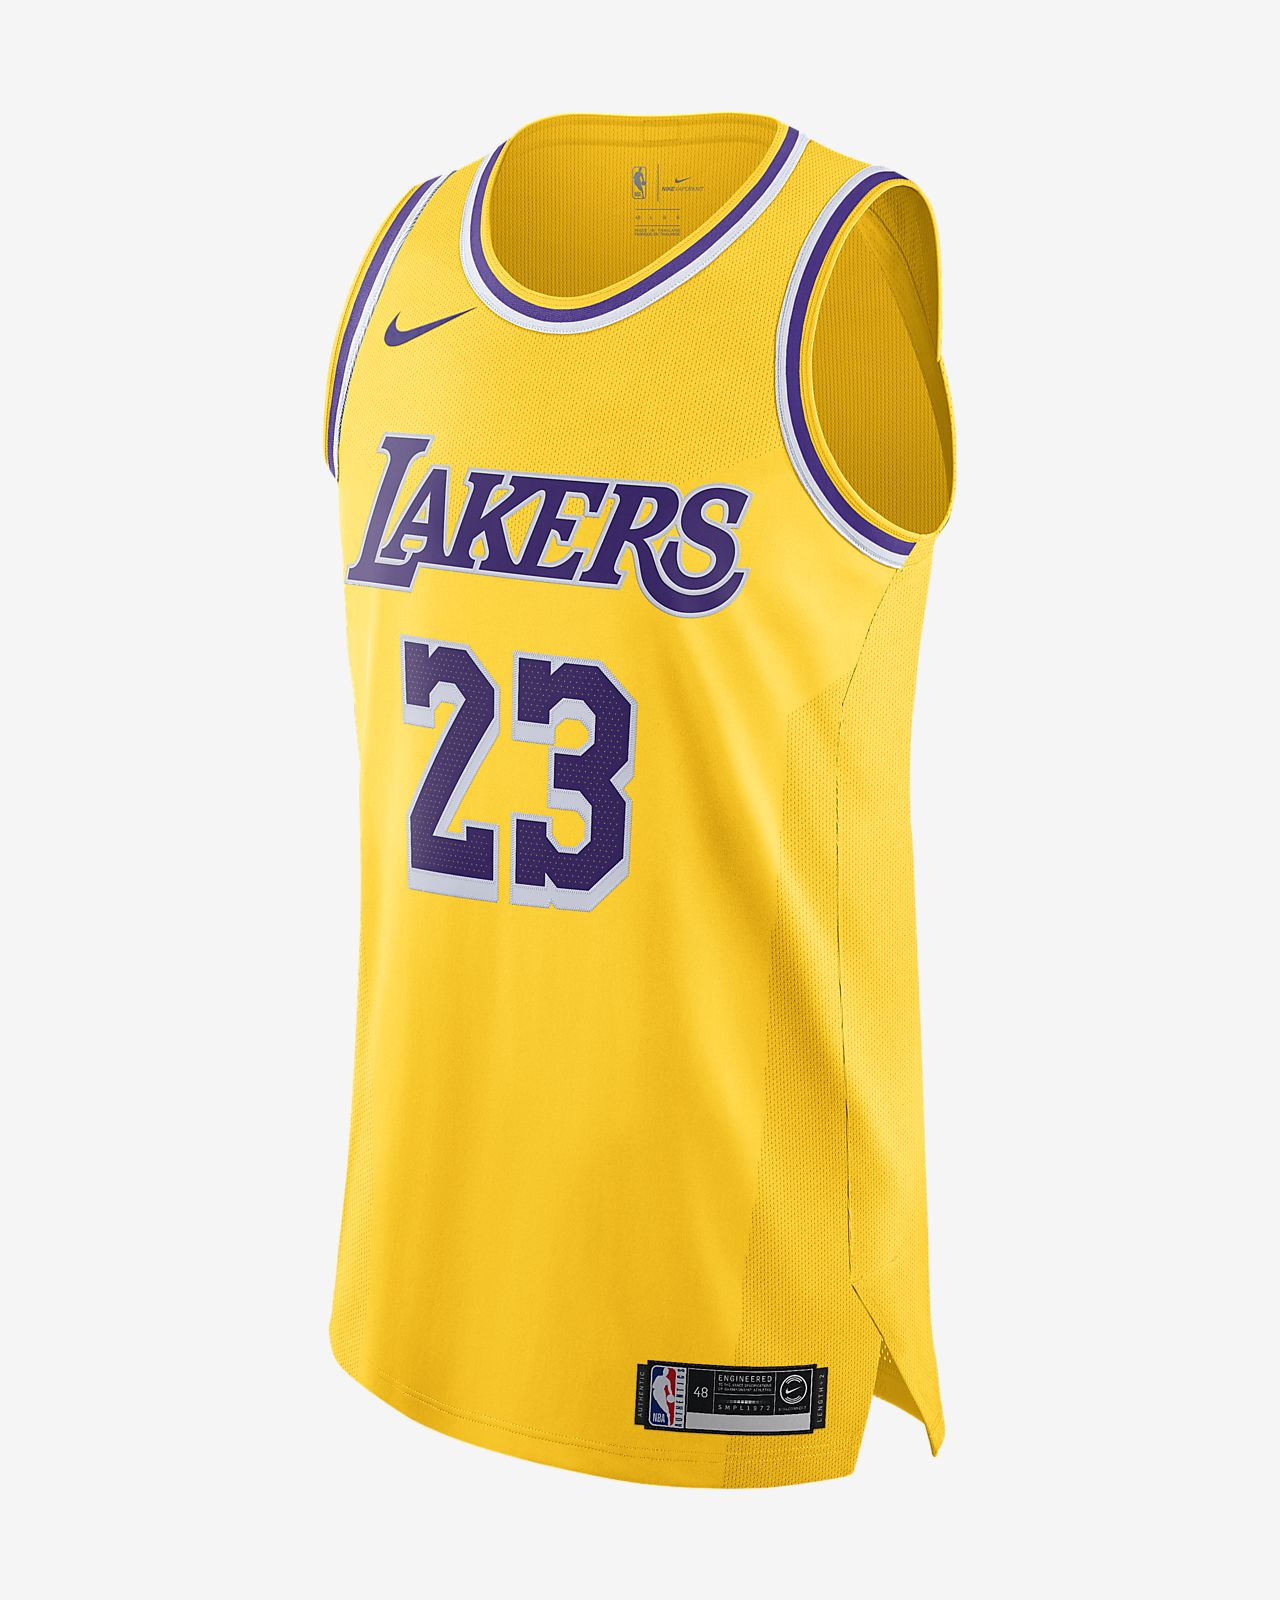 e5a20333e Men s Nike NBA Connected Jersey. LeBron James Icon Edition Authentic (Los  Angeles Lakers)